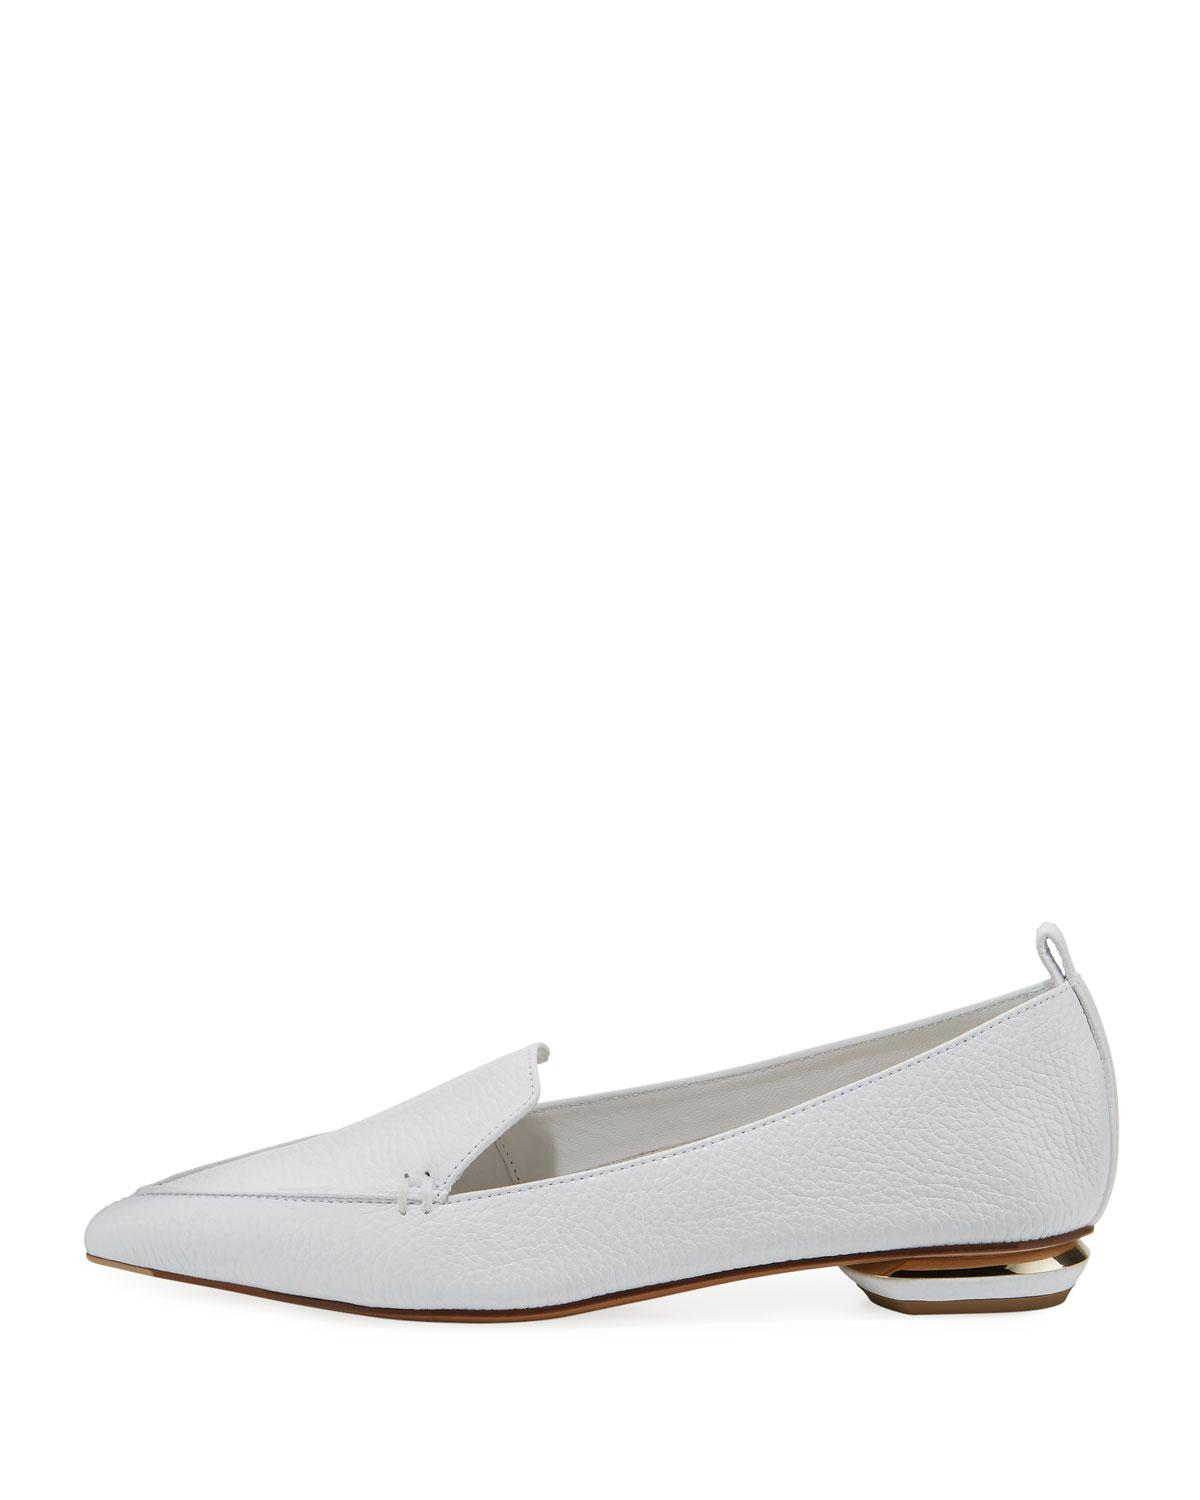 de9ff946d2c Lyst - Nicholas Kirkwood Beya Grained Leather Loafers in White - Save  66.56488549618321%